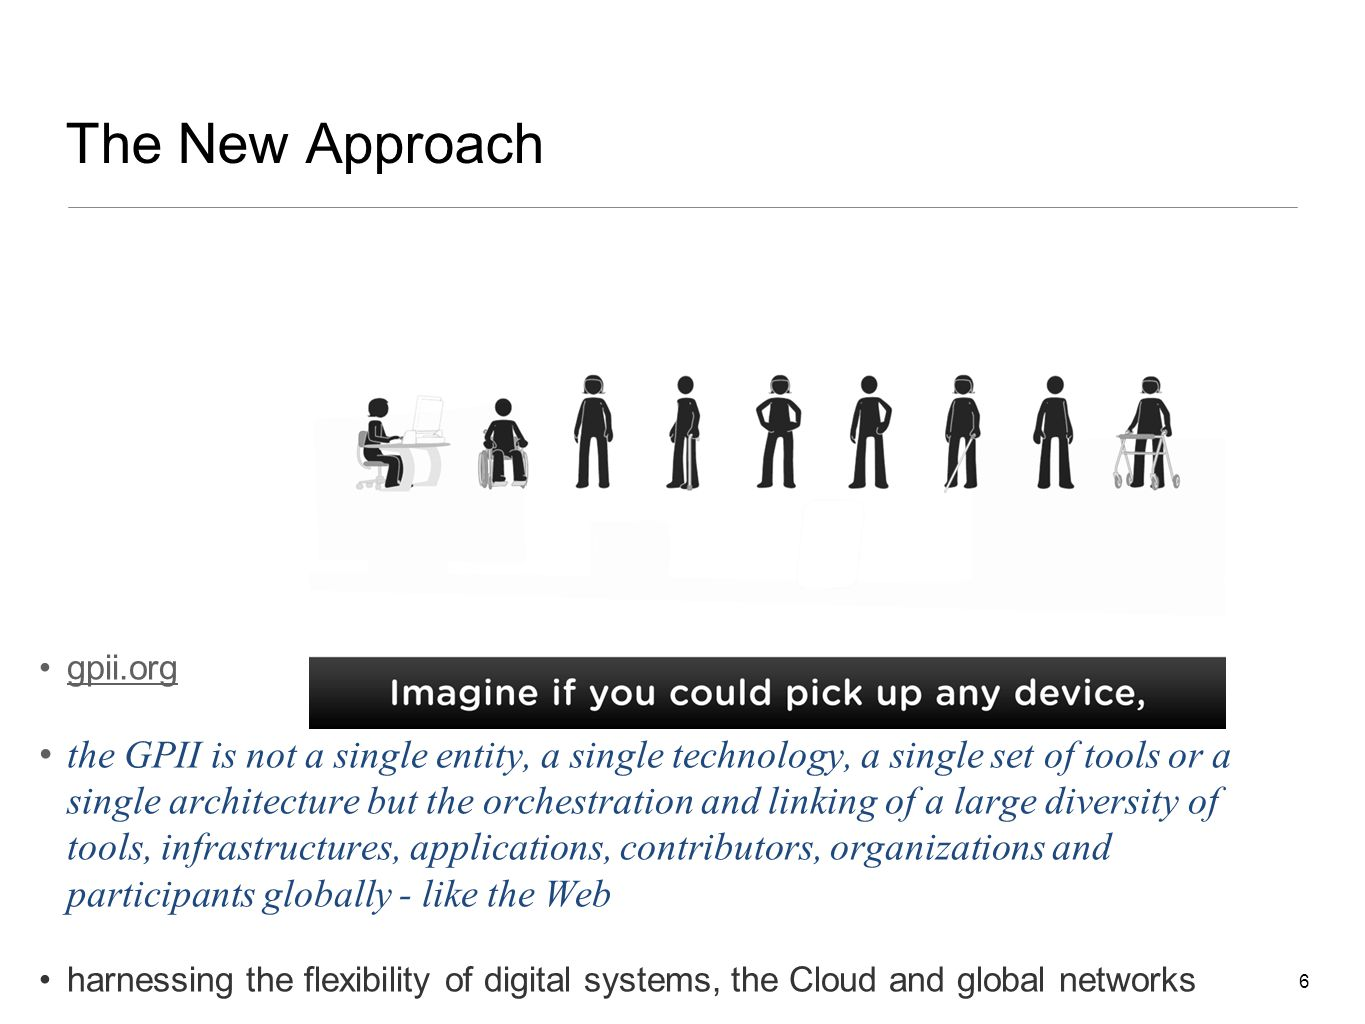 7 Potential to be the most powerful Digital Curbcut yet access to education for the doubly marginalized literacy and e-literacy an inclusive demand-supply pipeline impetus for innovation and market diversification even good for waste reduction integrated and at the forefront of innovation